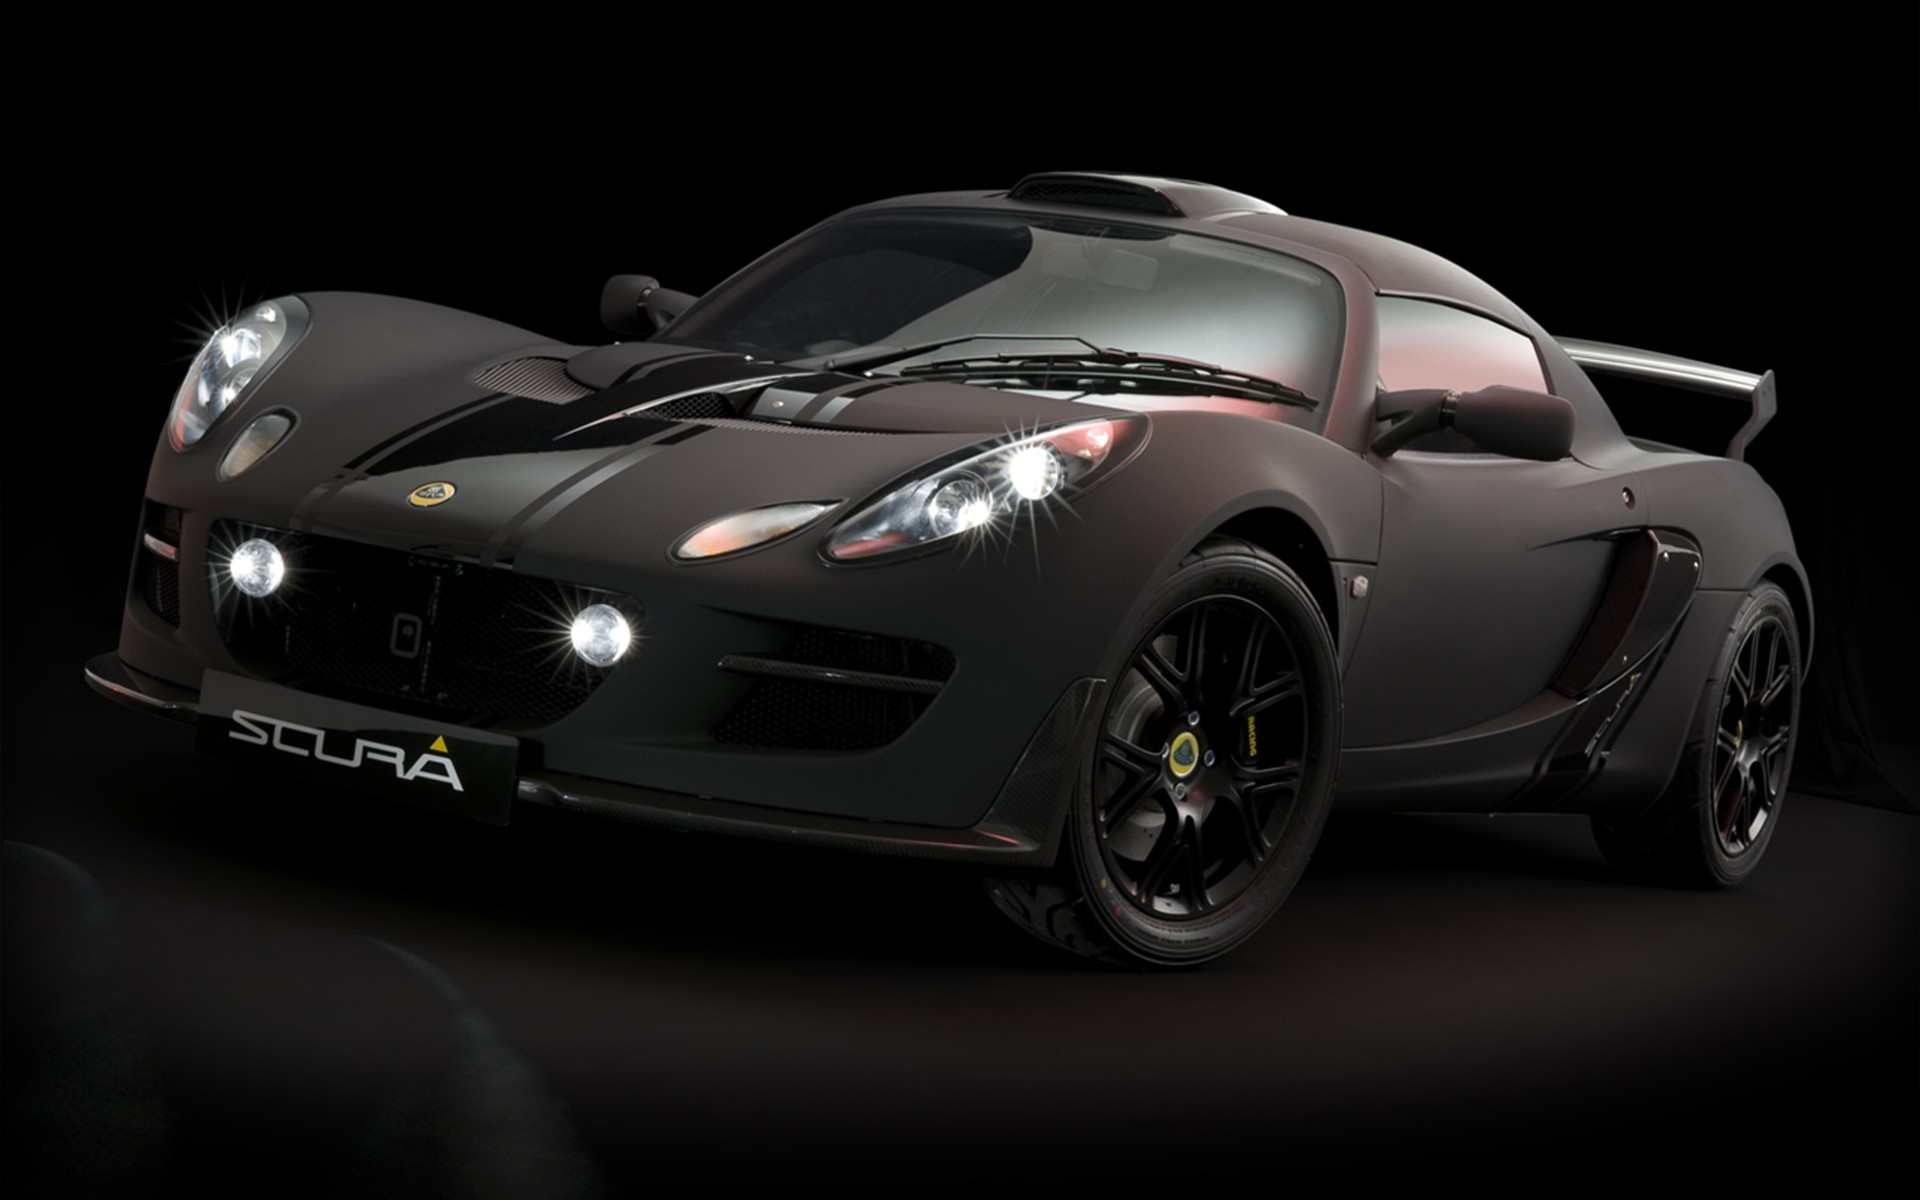 Lotus Exige Scura 2 252.08 Kb